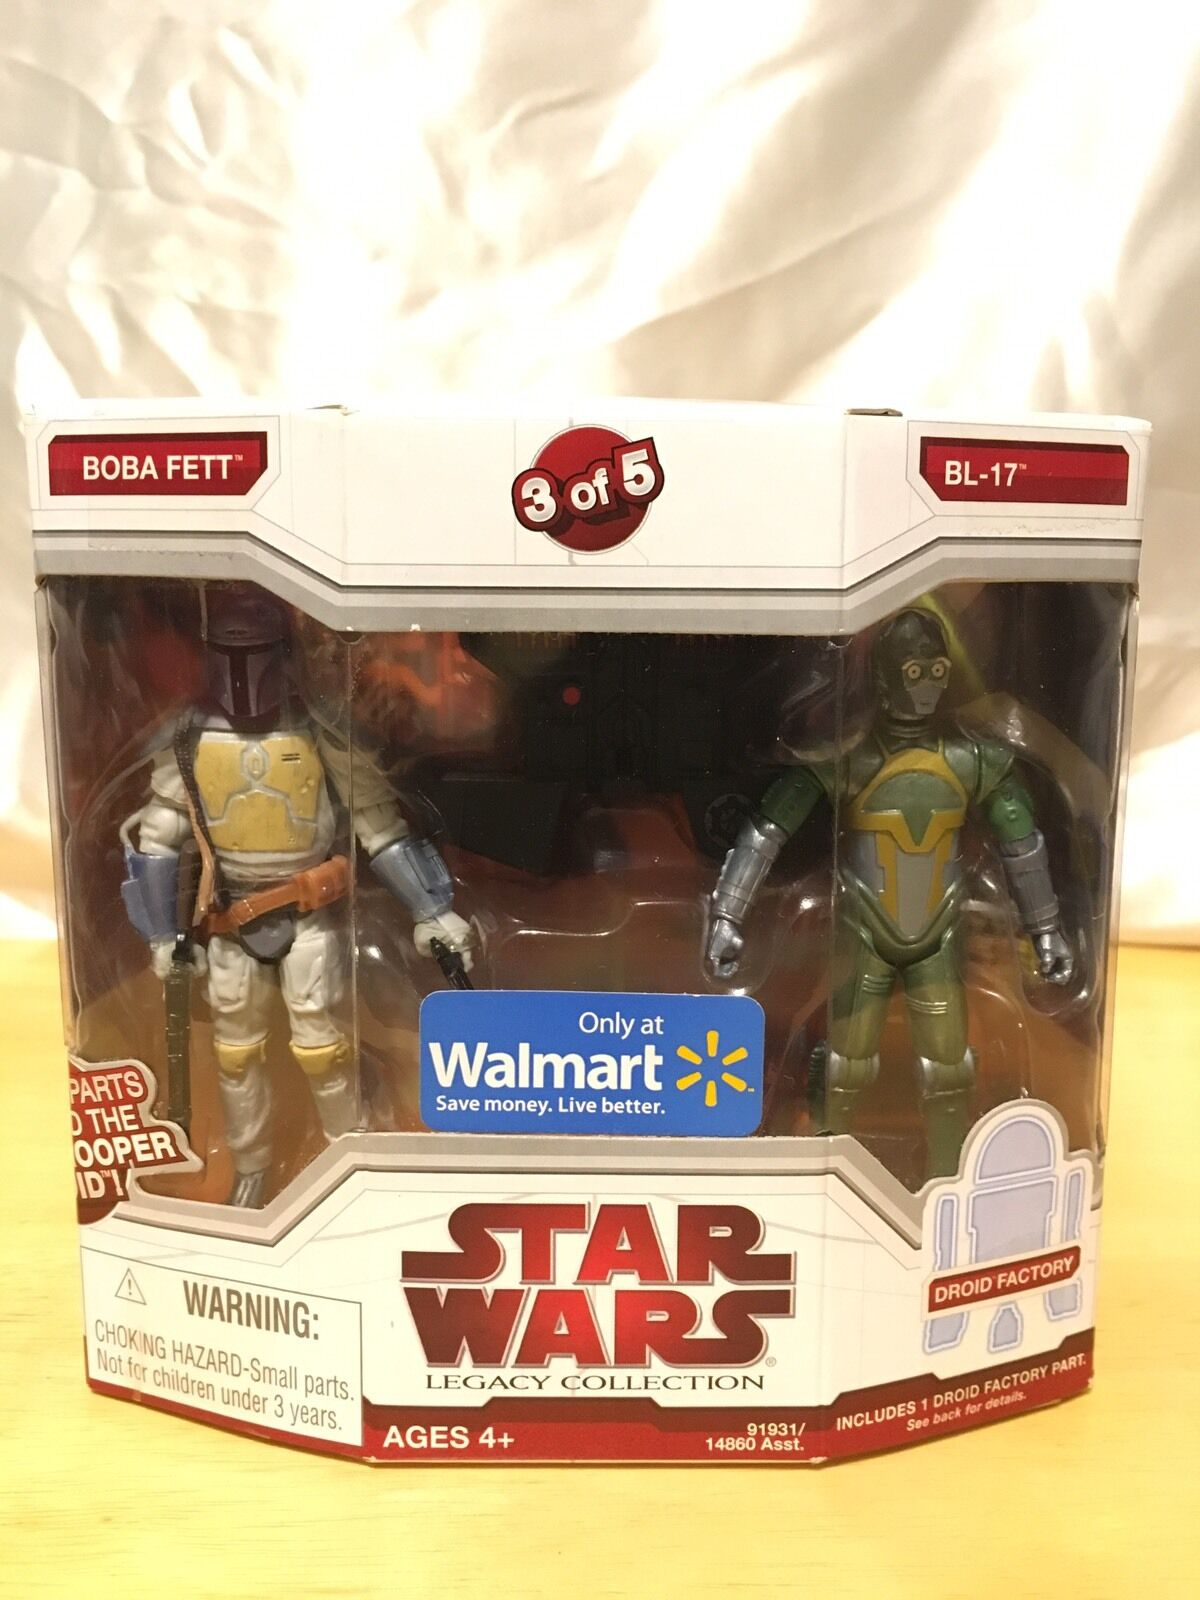 Nuovo Boba Fett BL-17 Droid 3 of  5 estrella guerras Legacy Collection WALMART Exclusive  punto vendita